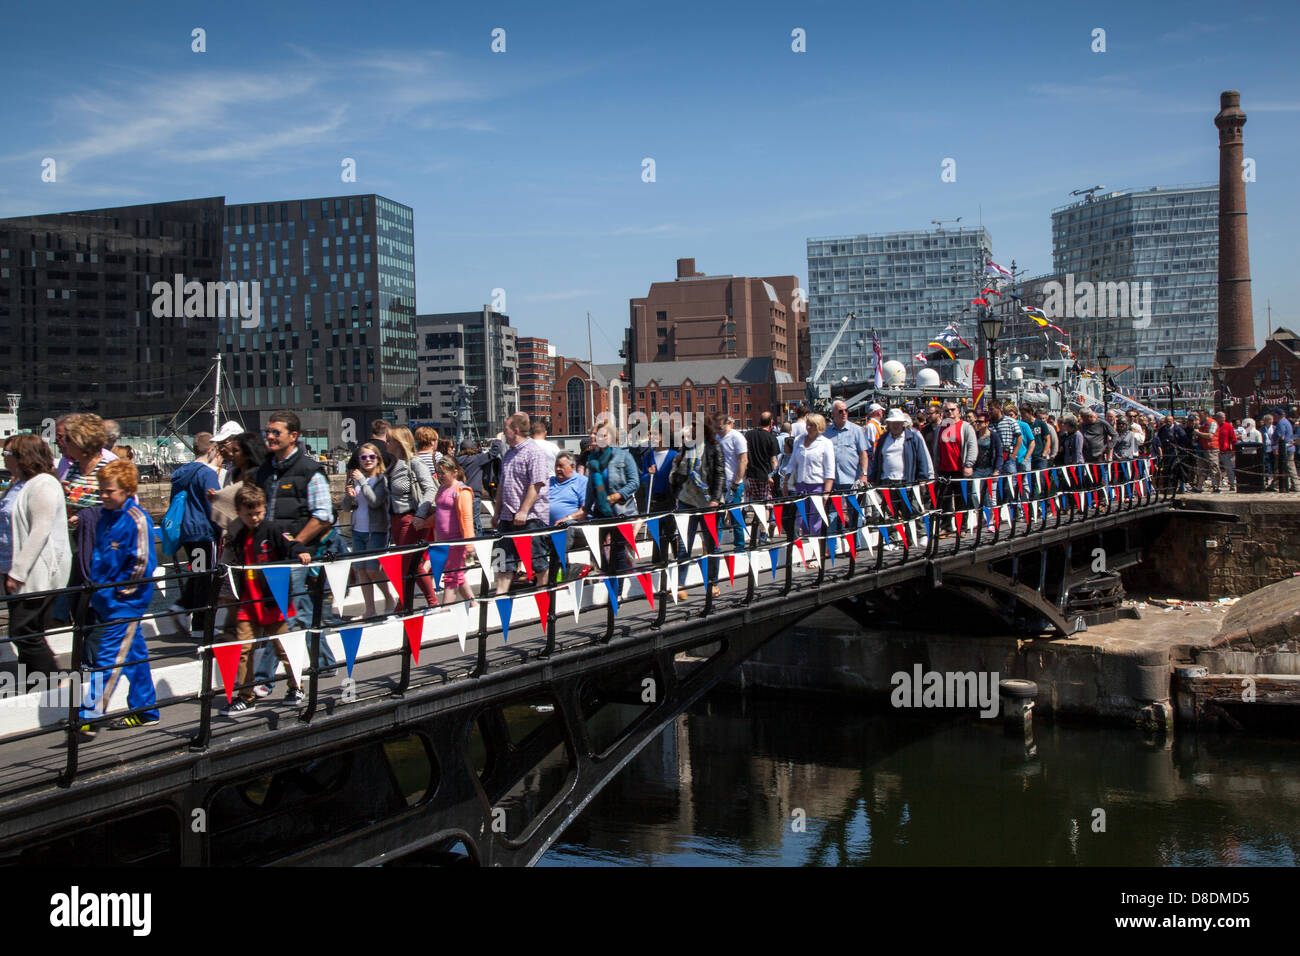 Liverpool, Merseyside, UK, 26th May, 2013.  Crowds crossing dock gates across the overloaded footbridge on Albert - Stock Image